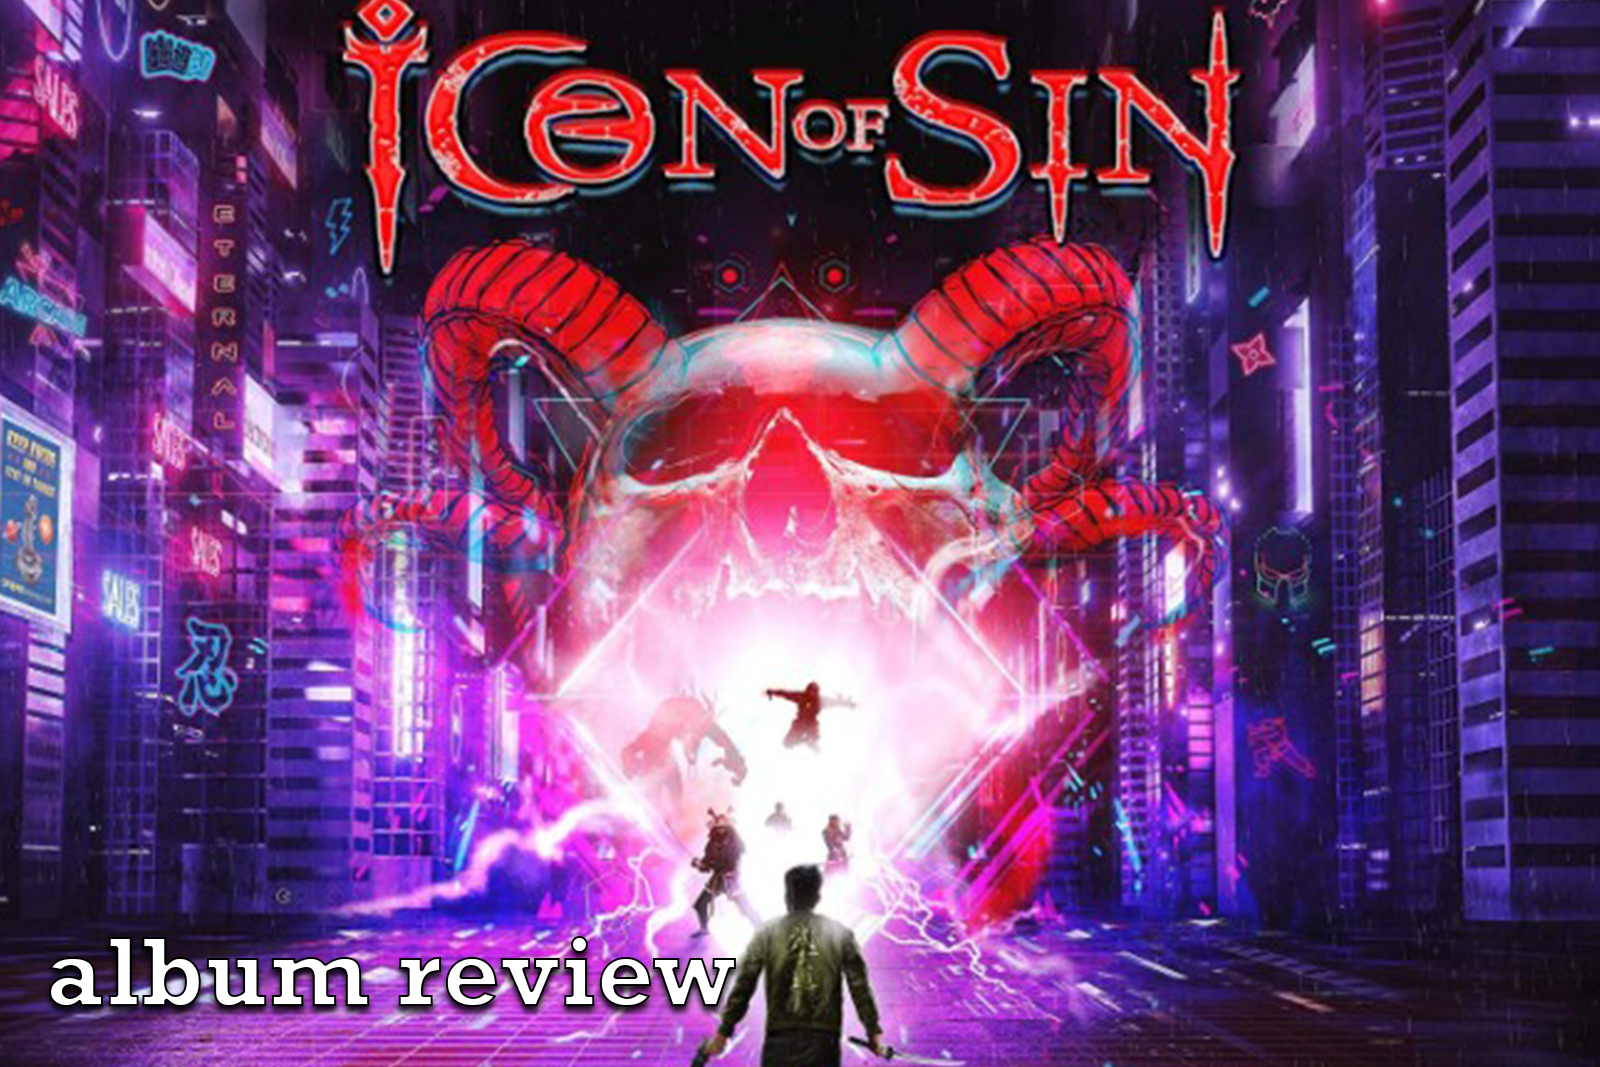 Featured image for Imitation and Flattery to the Nth Degree: Icon of Sin — Self-Titled Album Review